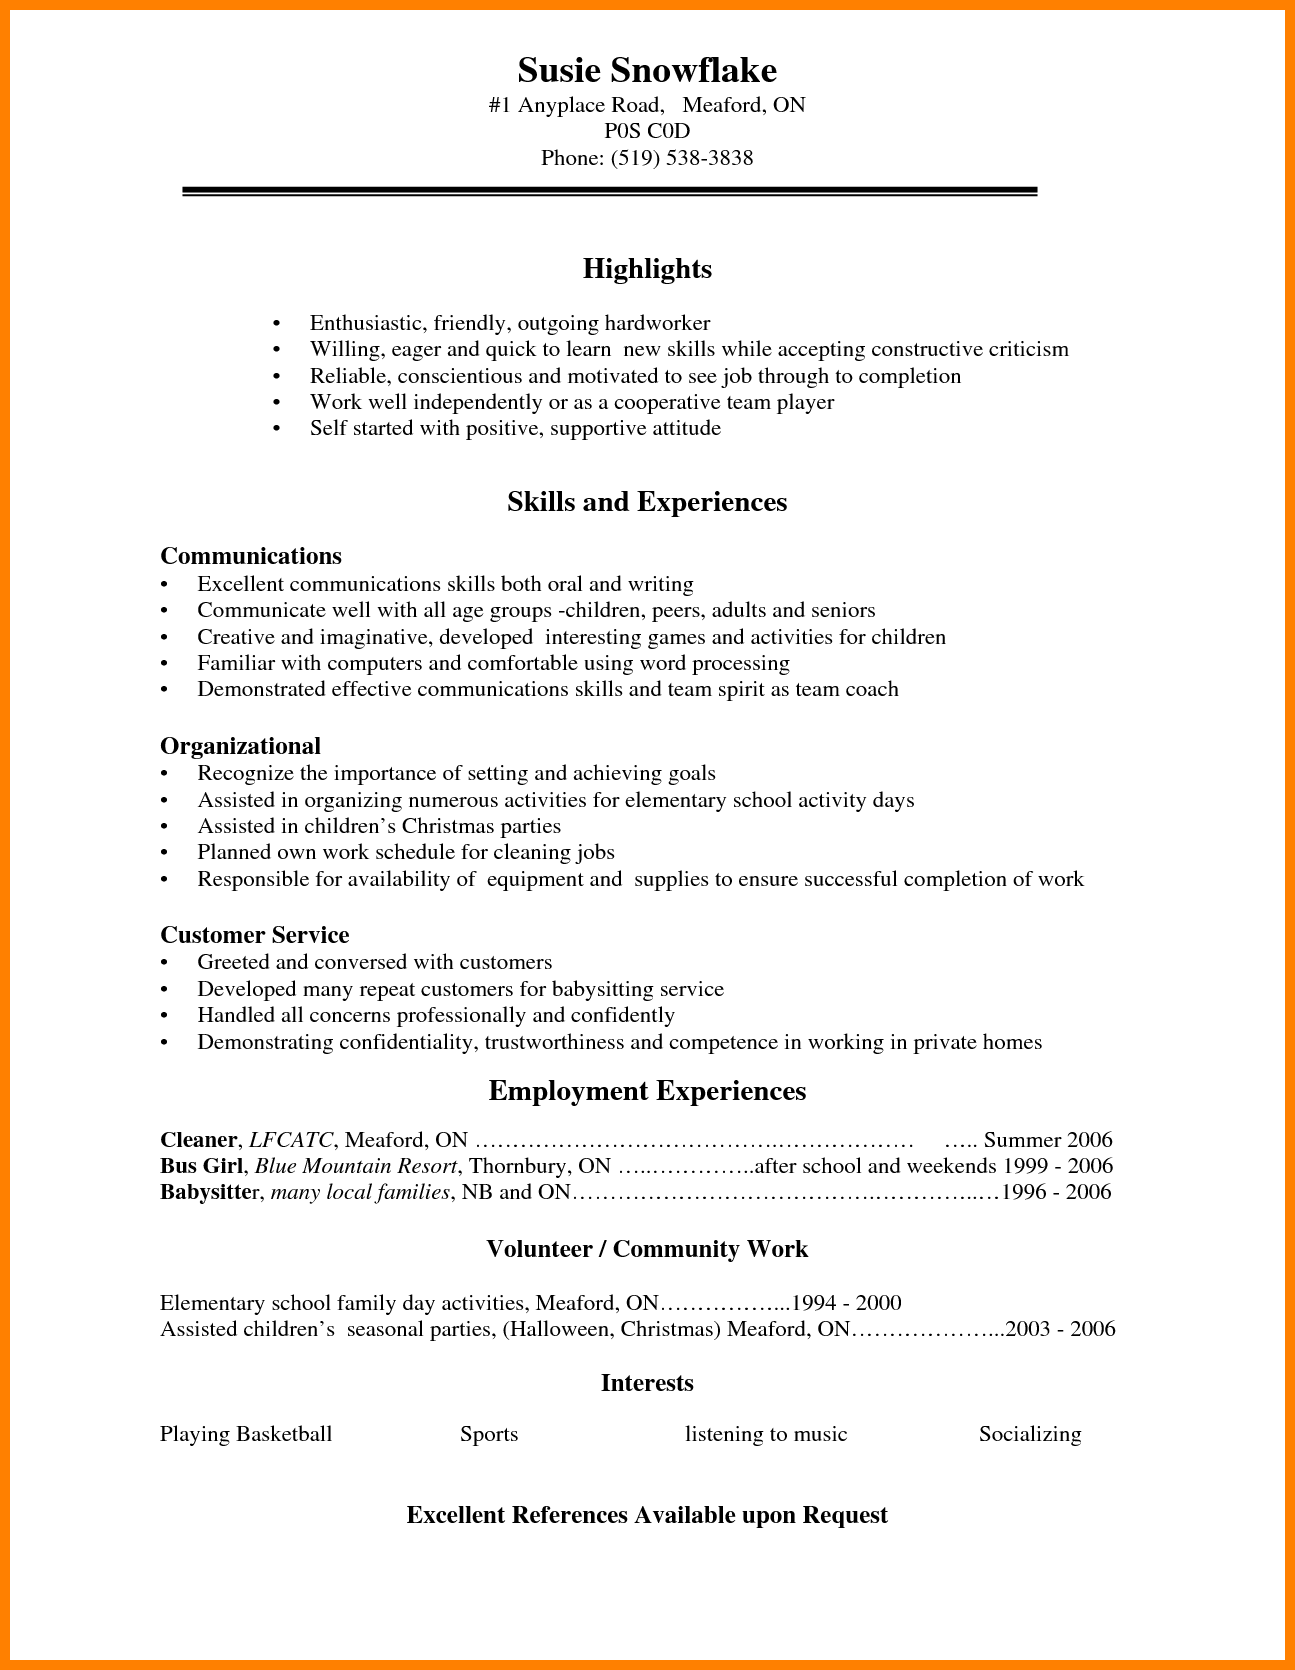 5 Cv Template For High School Students Theorynpractice Student Resume Template Resume Objective Examples Resume Skills